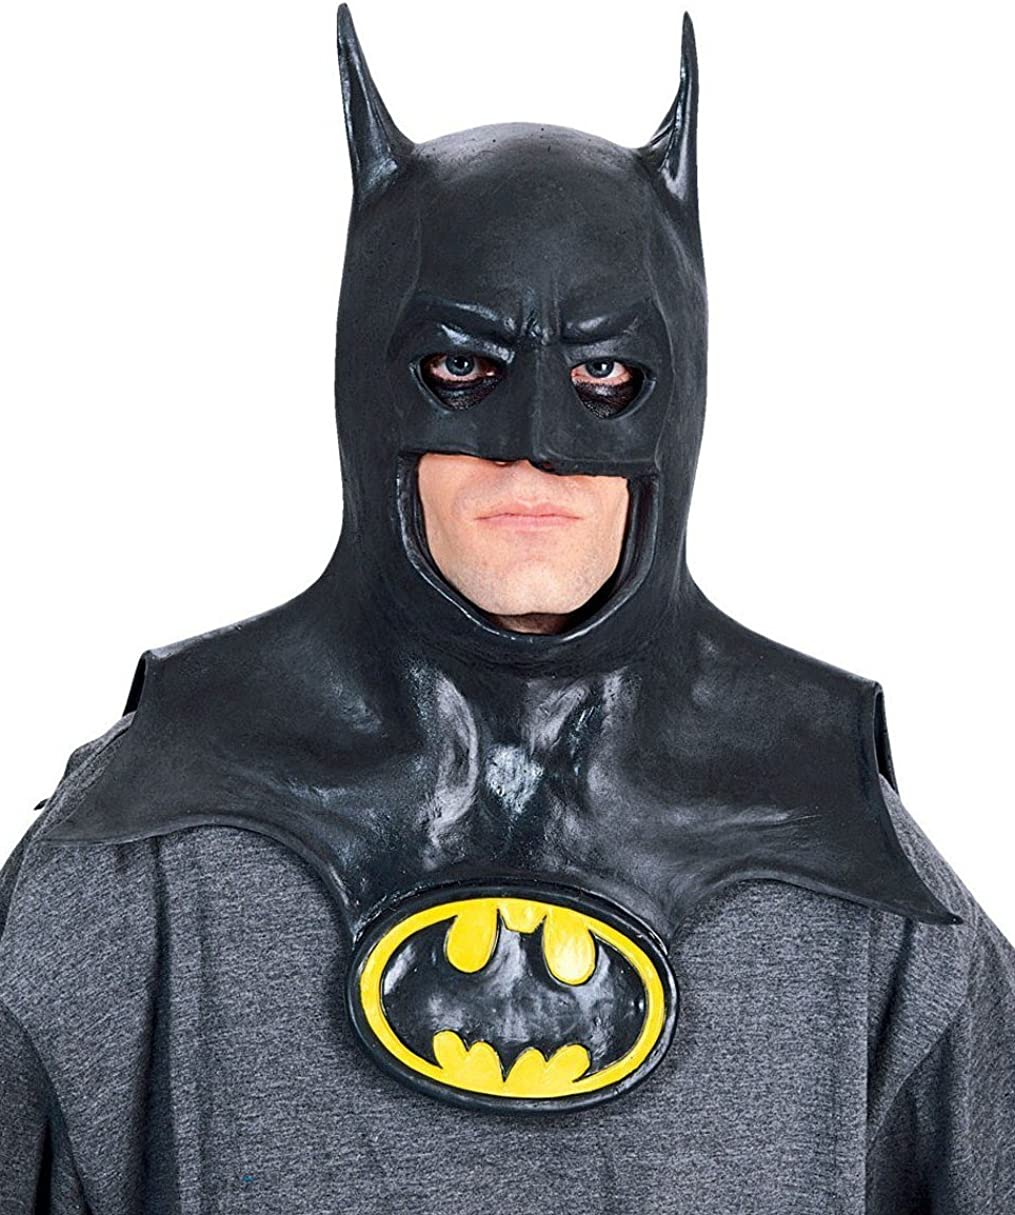 Amazon Com Rubie S Batman Movie Deluxe Overhead Mask With Cowl Black One Size Clothing